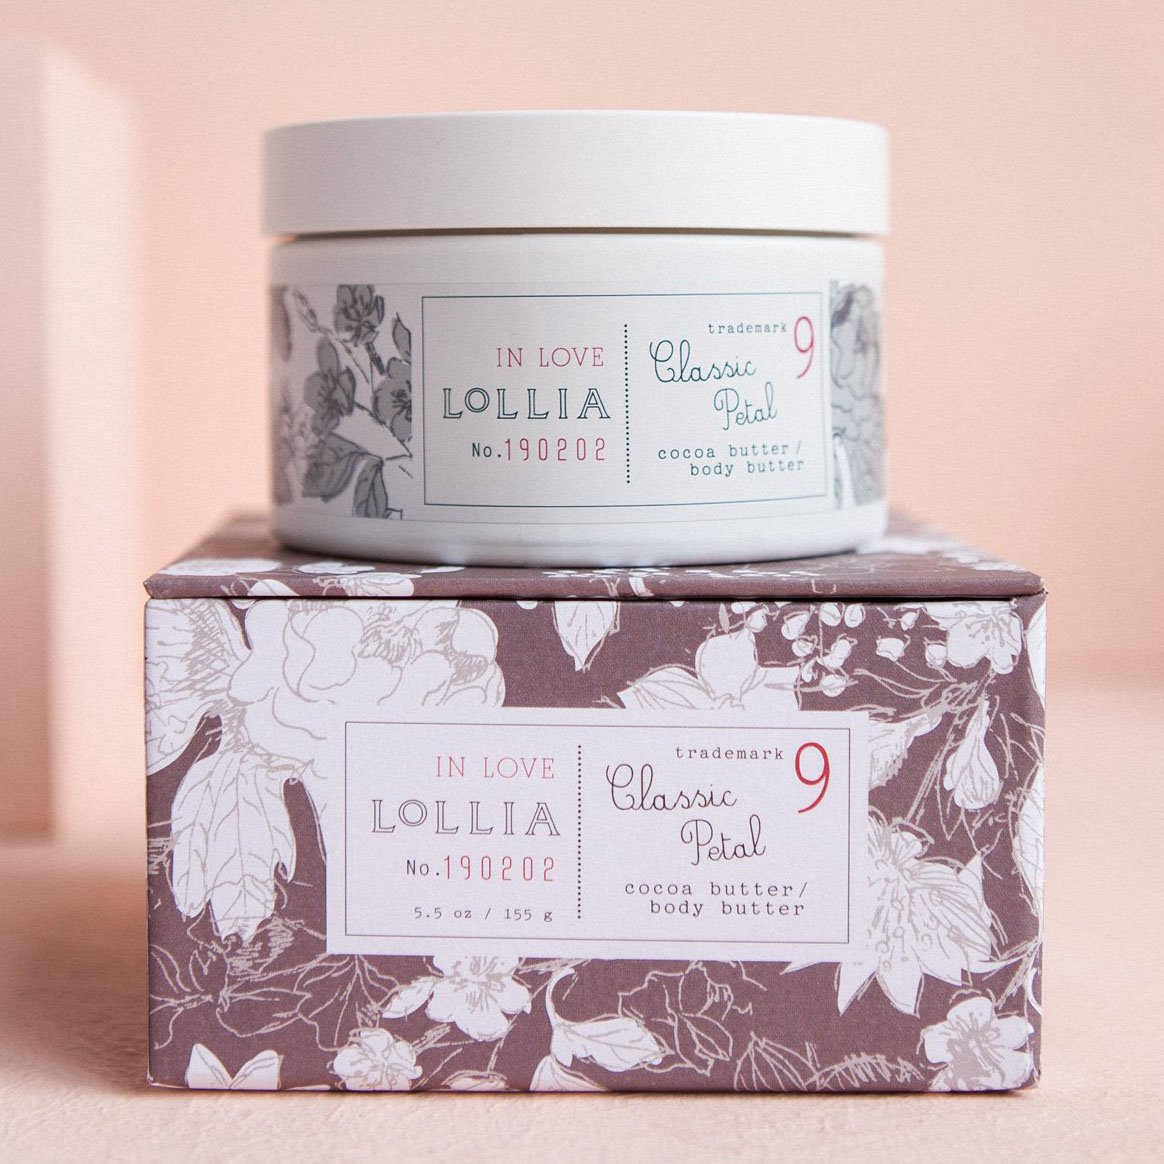 Lollia In Love No. 09 Whipped Body Butter